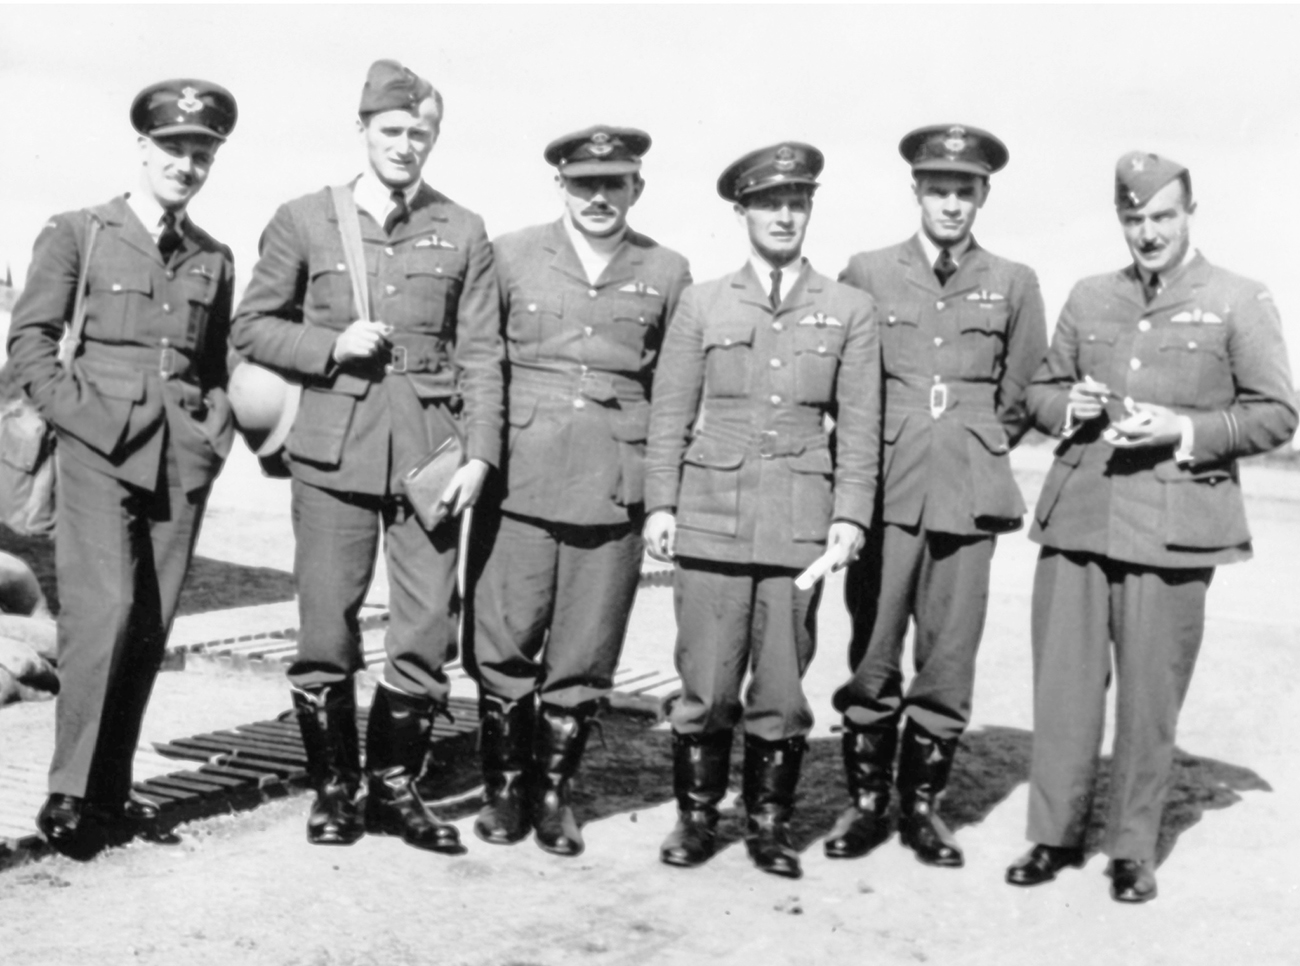 Flying Officer Hartland de Montarville Molson (left), Flying Officer Paul Brooks Pitcher, Flying Officer Peter Locknan, Flying Officer Otto John Peterson, Flying Officer Charles Warren Trevena, and Flying Officer Gordon Roy McGregor, all pilots with Royal Canadian Air Force No. 1 (Fighter) Squadron, are stationed at Royal Air Force Northolt, South Ruislip, in the London borough of Hillingdon In 1940. PHOTO: DND